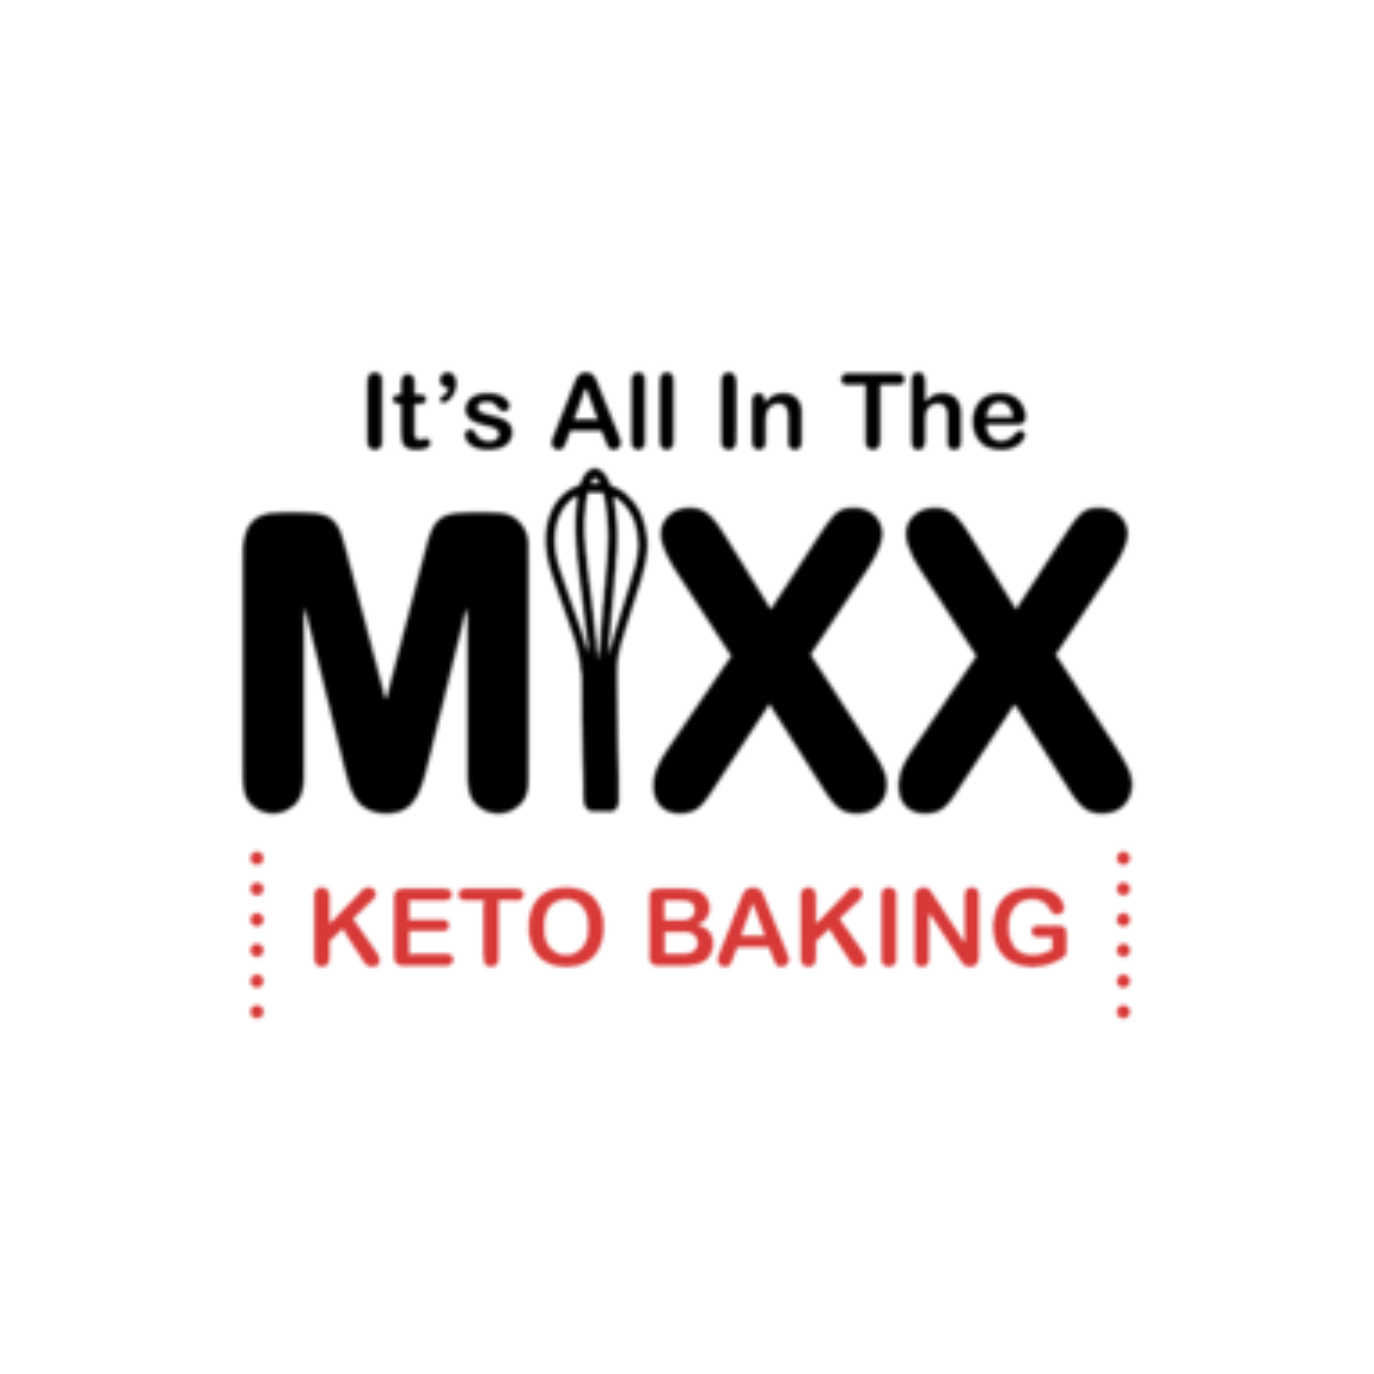 It's All In The Mixx logo - Keto Certified by the Paleo Foundation